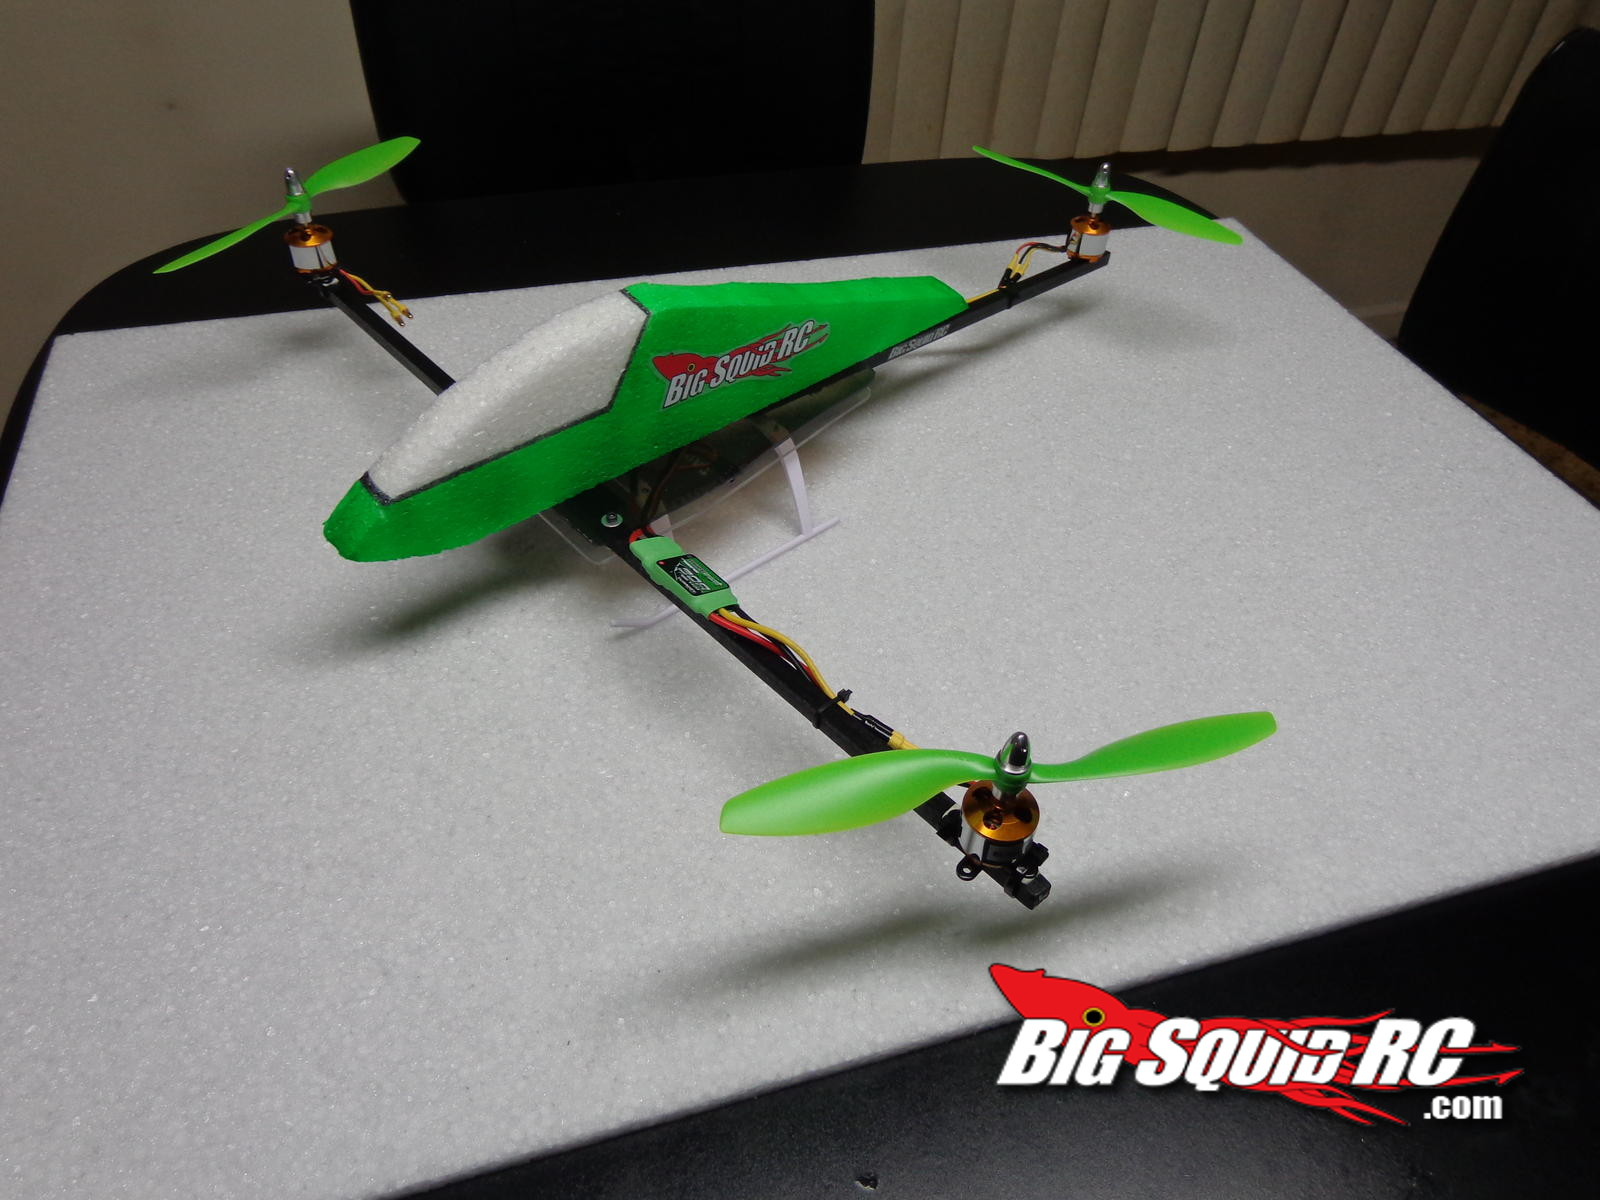 4 rotor rc helicopter with Raging Rotors Make Every Rotor Count on 384165 as well Watch in addition Raging Rotors Make Every Rotor Count likewise 397251 furthermore Len Mount Helicopteros Rc Gran Escala.